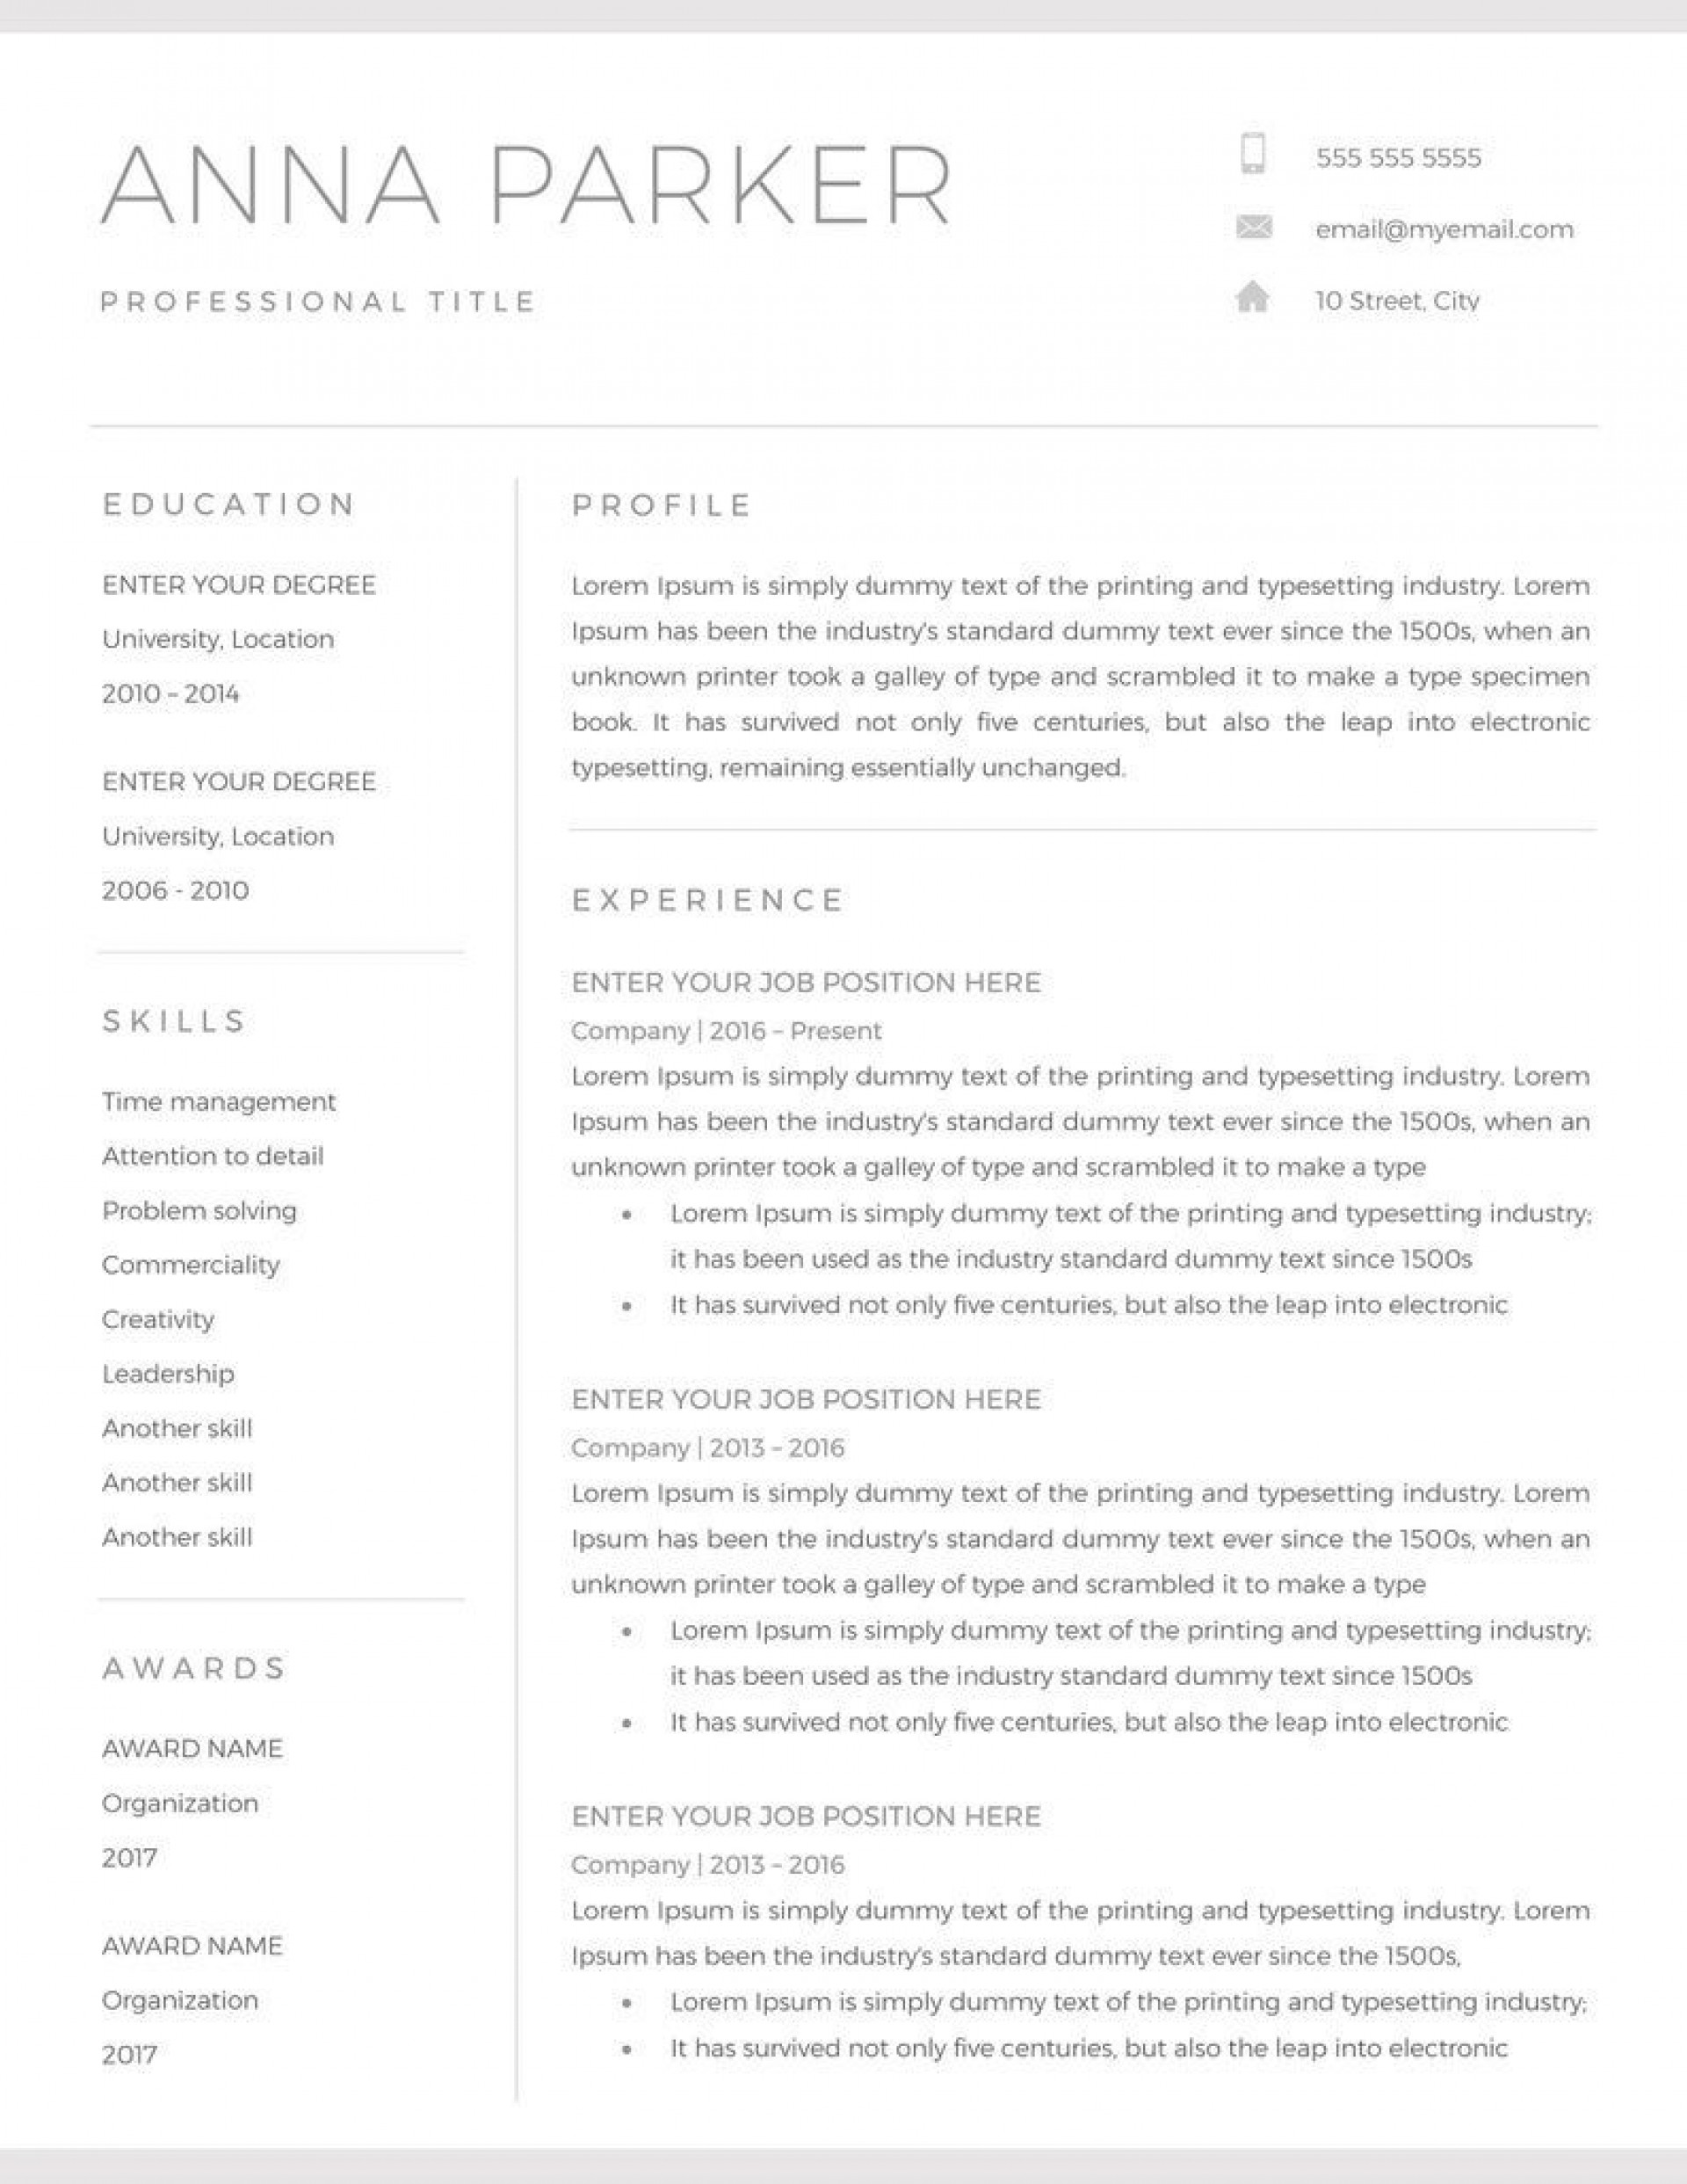 004 Top M Word Template Resume Example  Attractive Free Download Microsoft 2010 Downloadable Blank1920